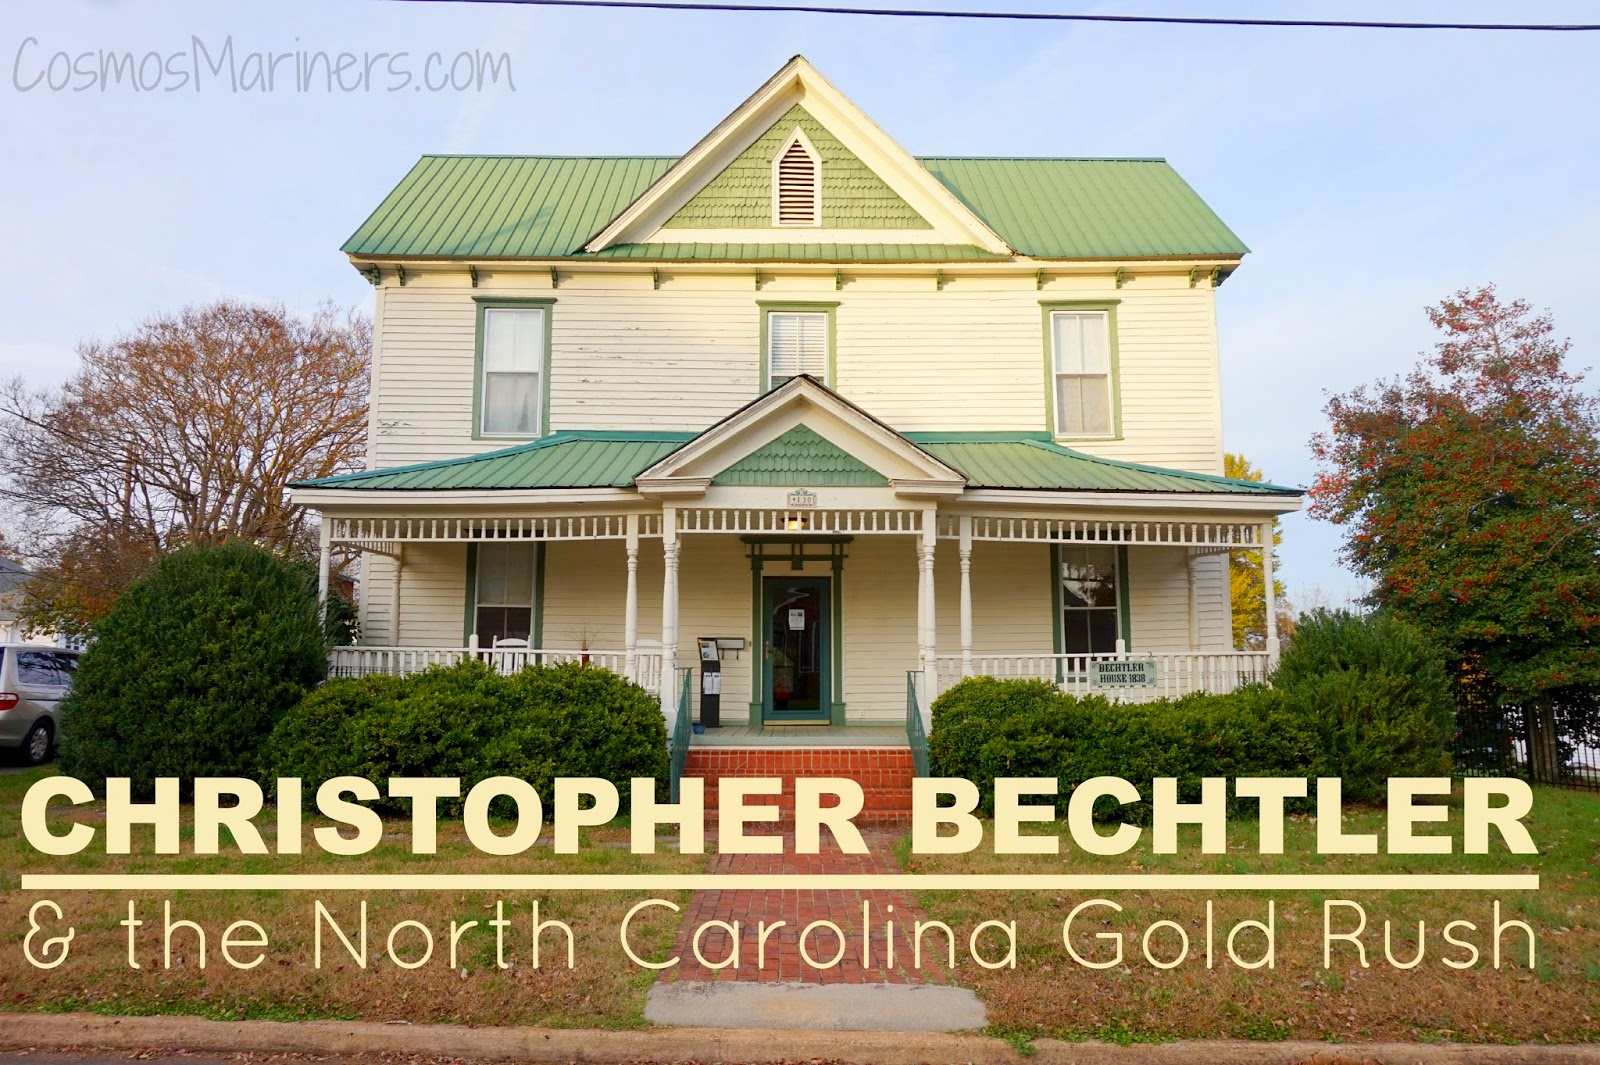 Christopher Bechtler and the North Carolina Gold Rush | CosmosMariners.com